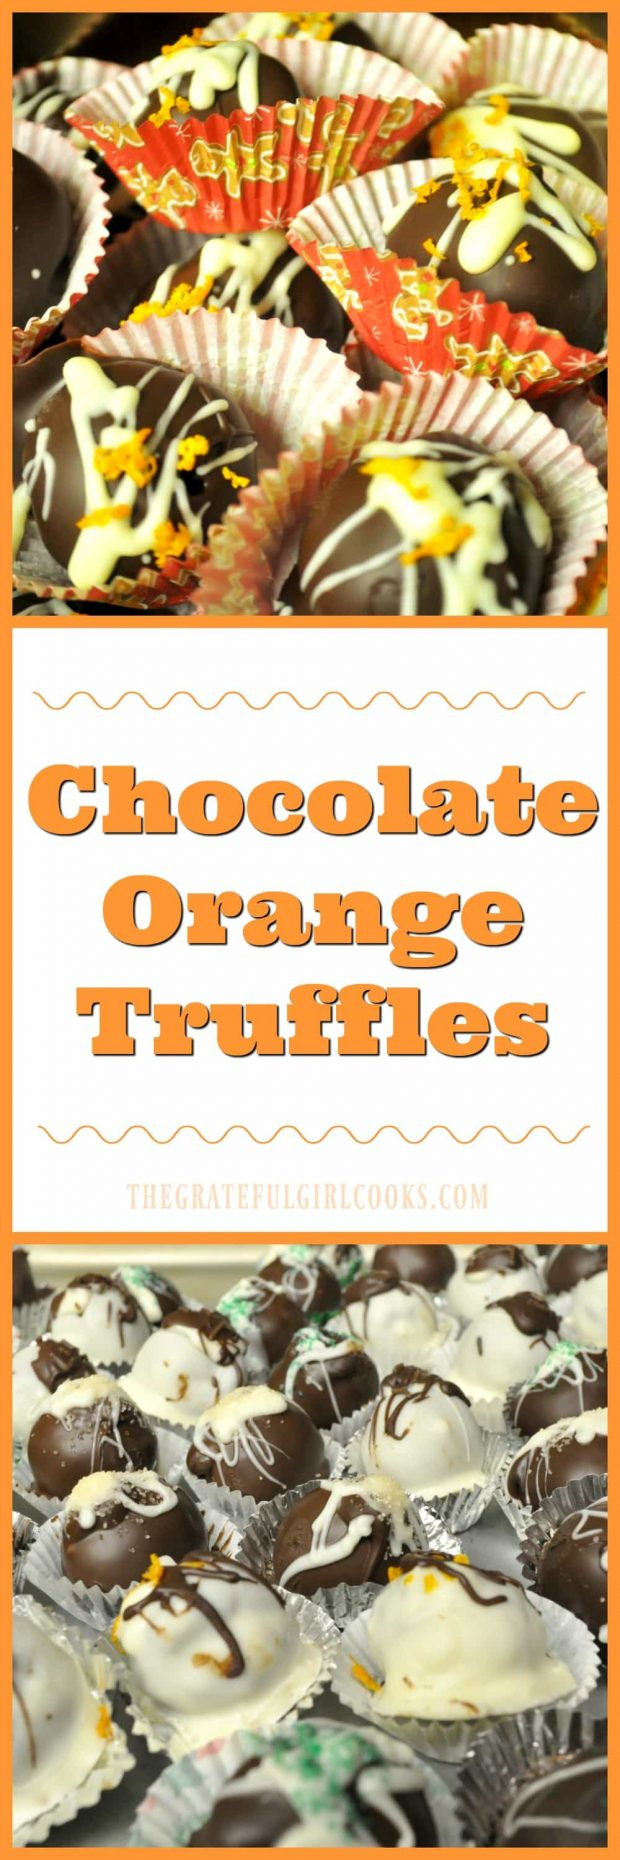 Chocolate-Orange Truffles / The Grateful Girl Cooks! Chocolate Orange Truffles are delicious treats to enjoy during the holidays! Creamy orange flavored chocolate centers, dipped in chocolate to cover. YUM!